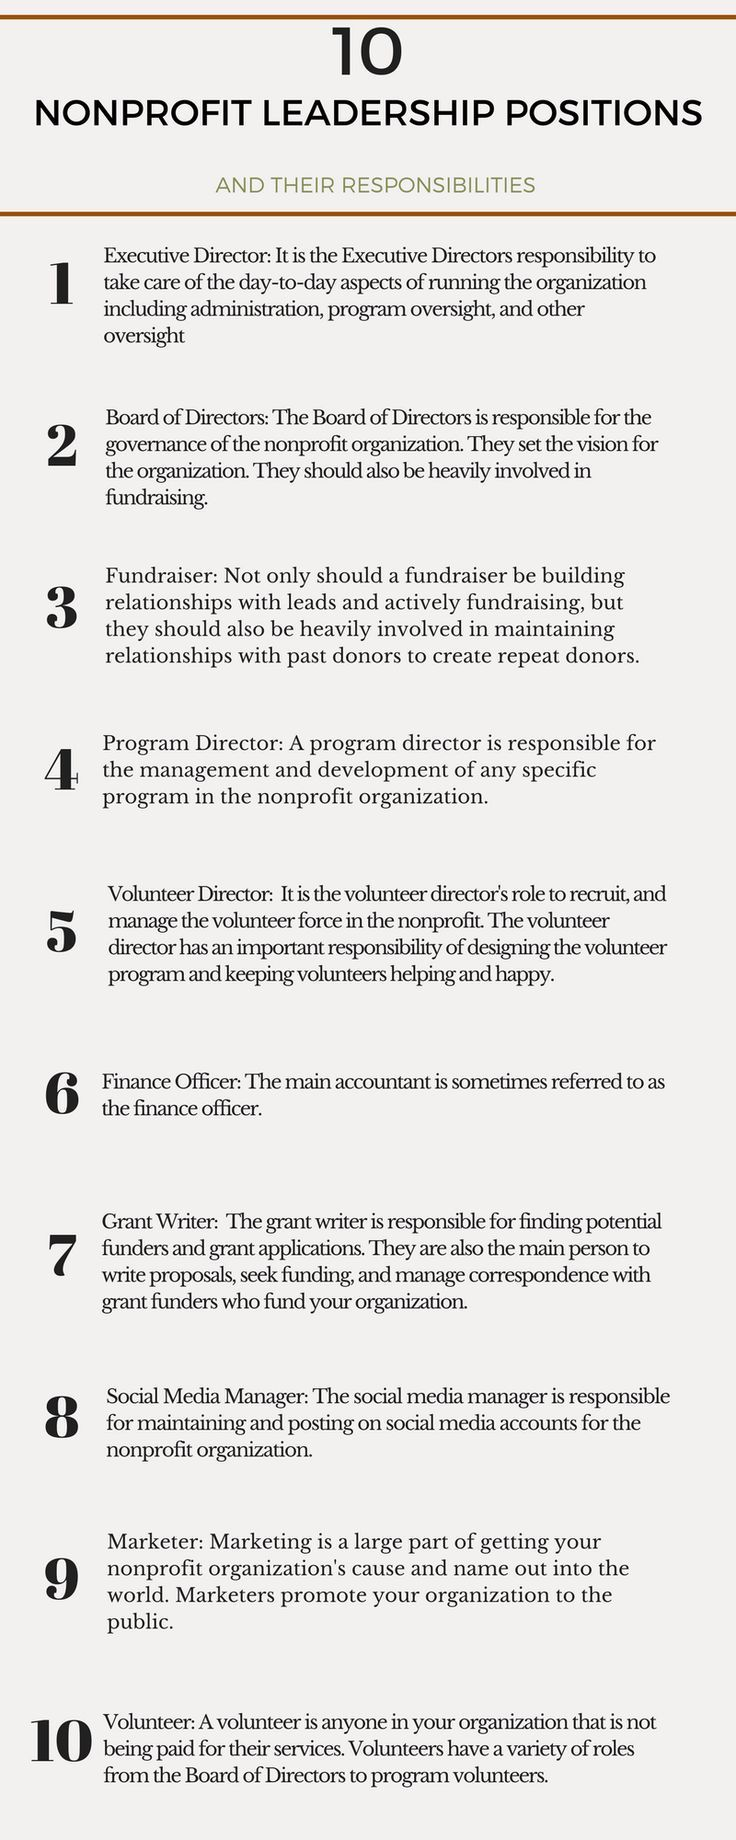 Nonprofit Leadership Positions Infographic Nonprofit Marketing Nonprofit Management Nonprofit Communications